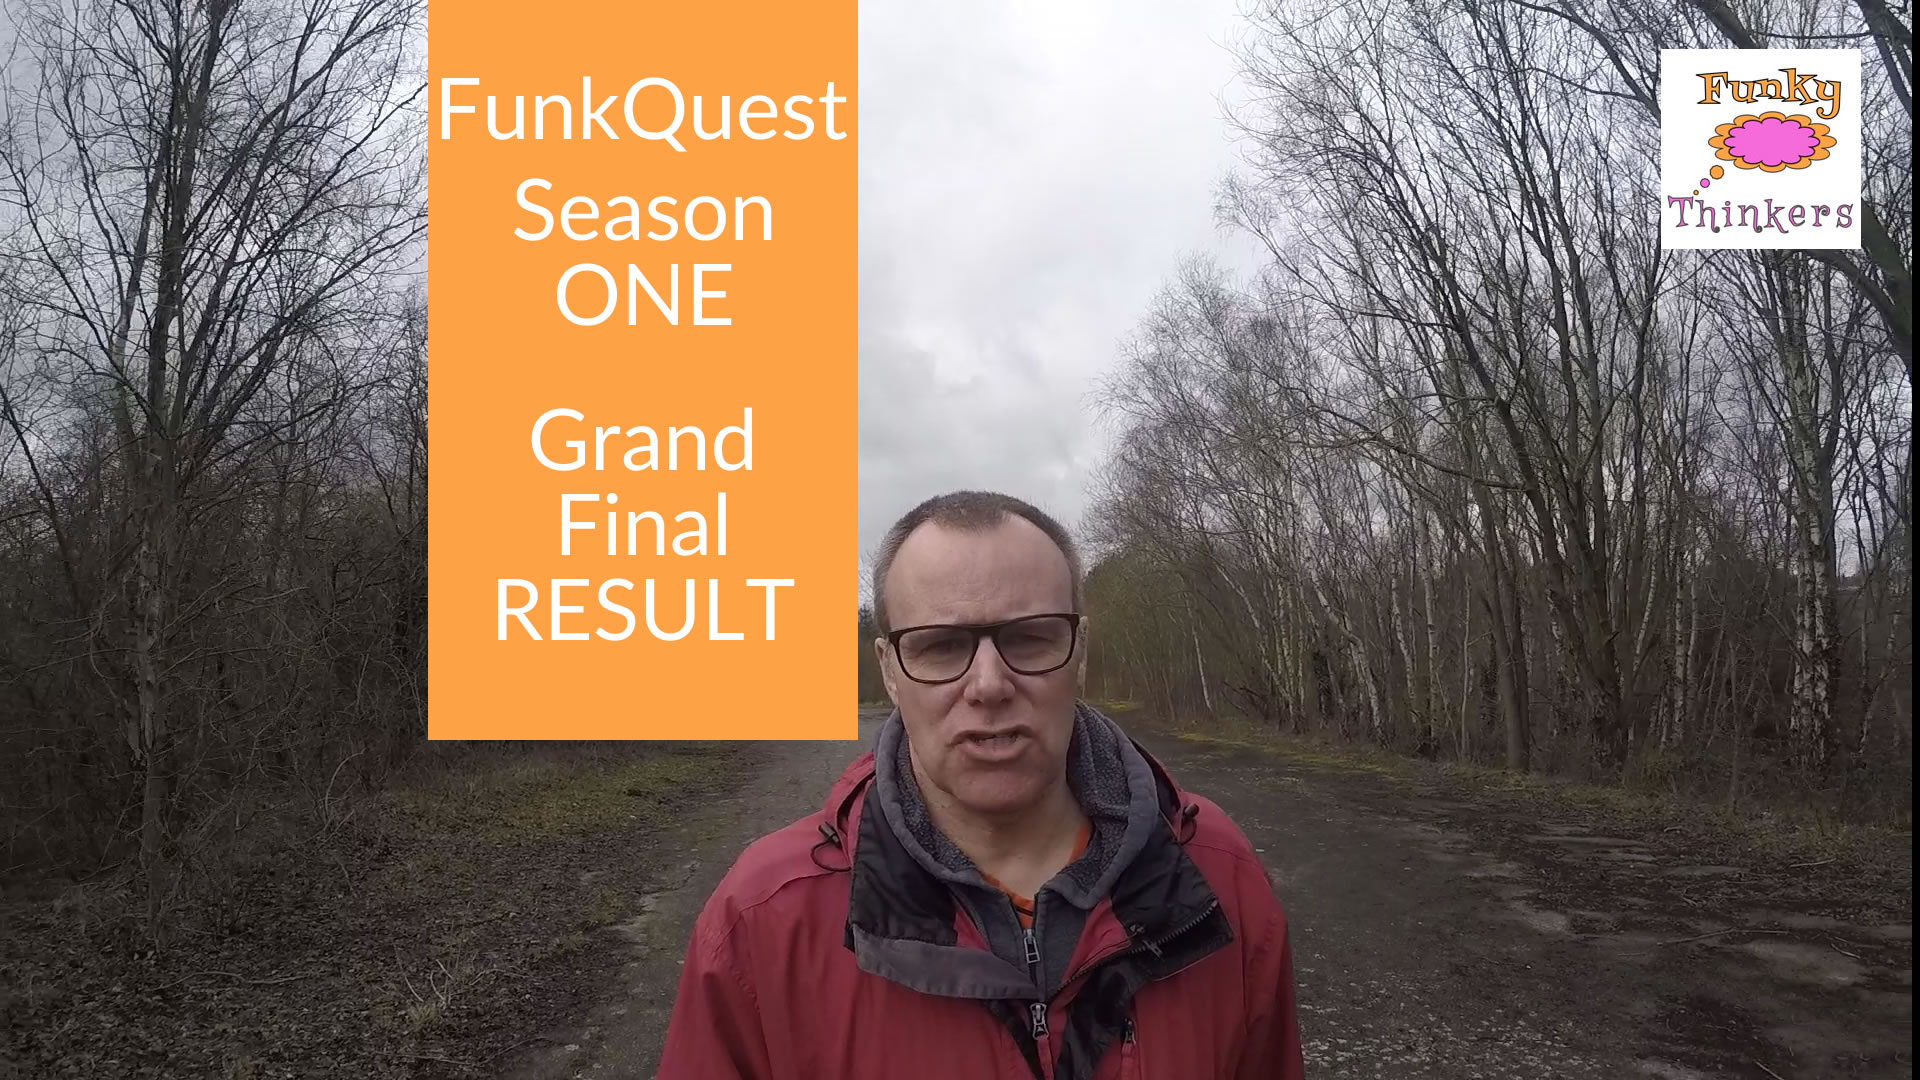 FunkQuest season one grand final results show